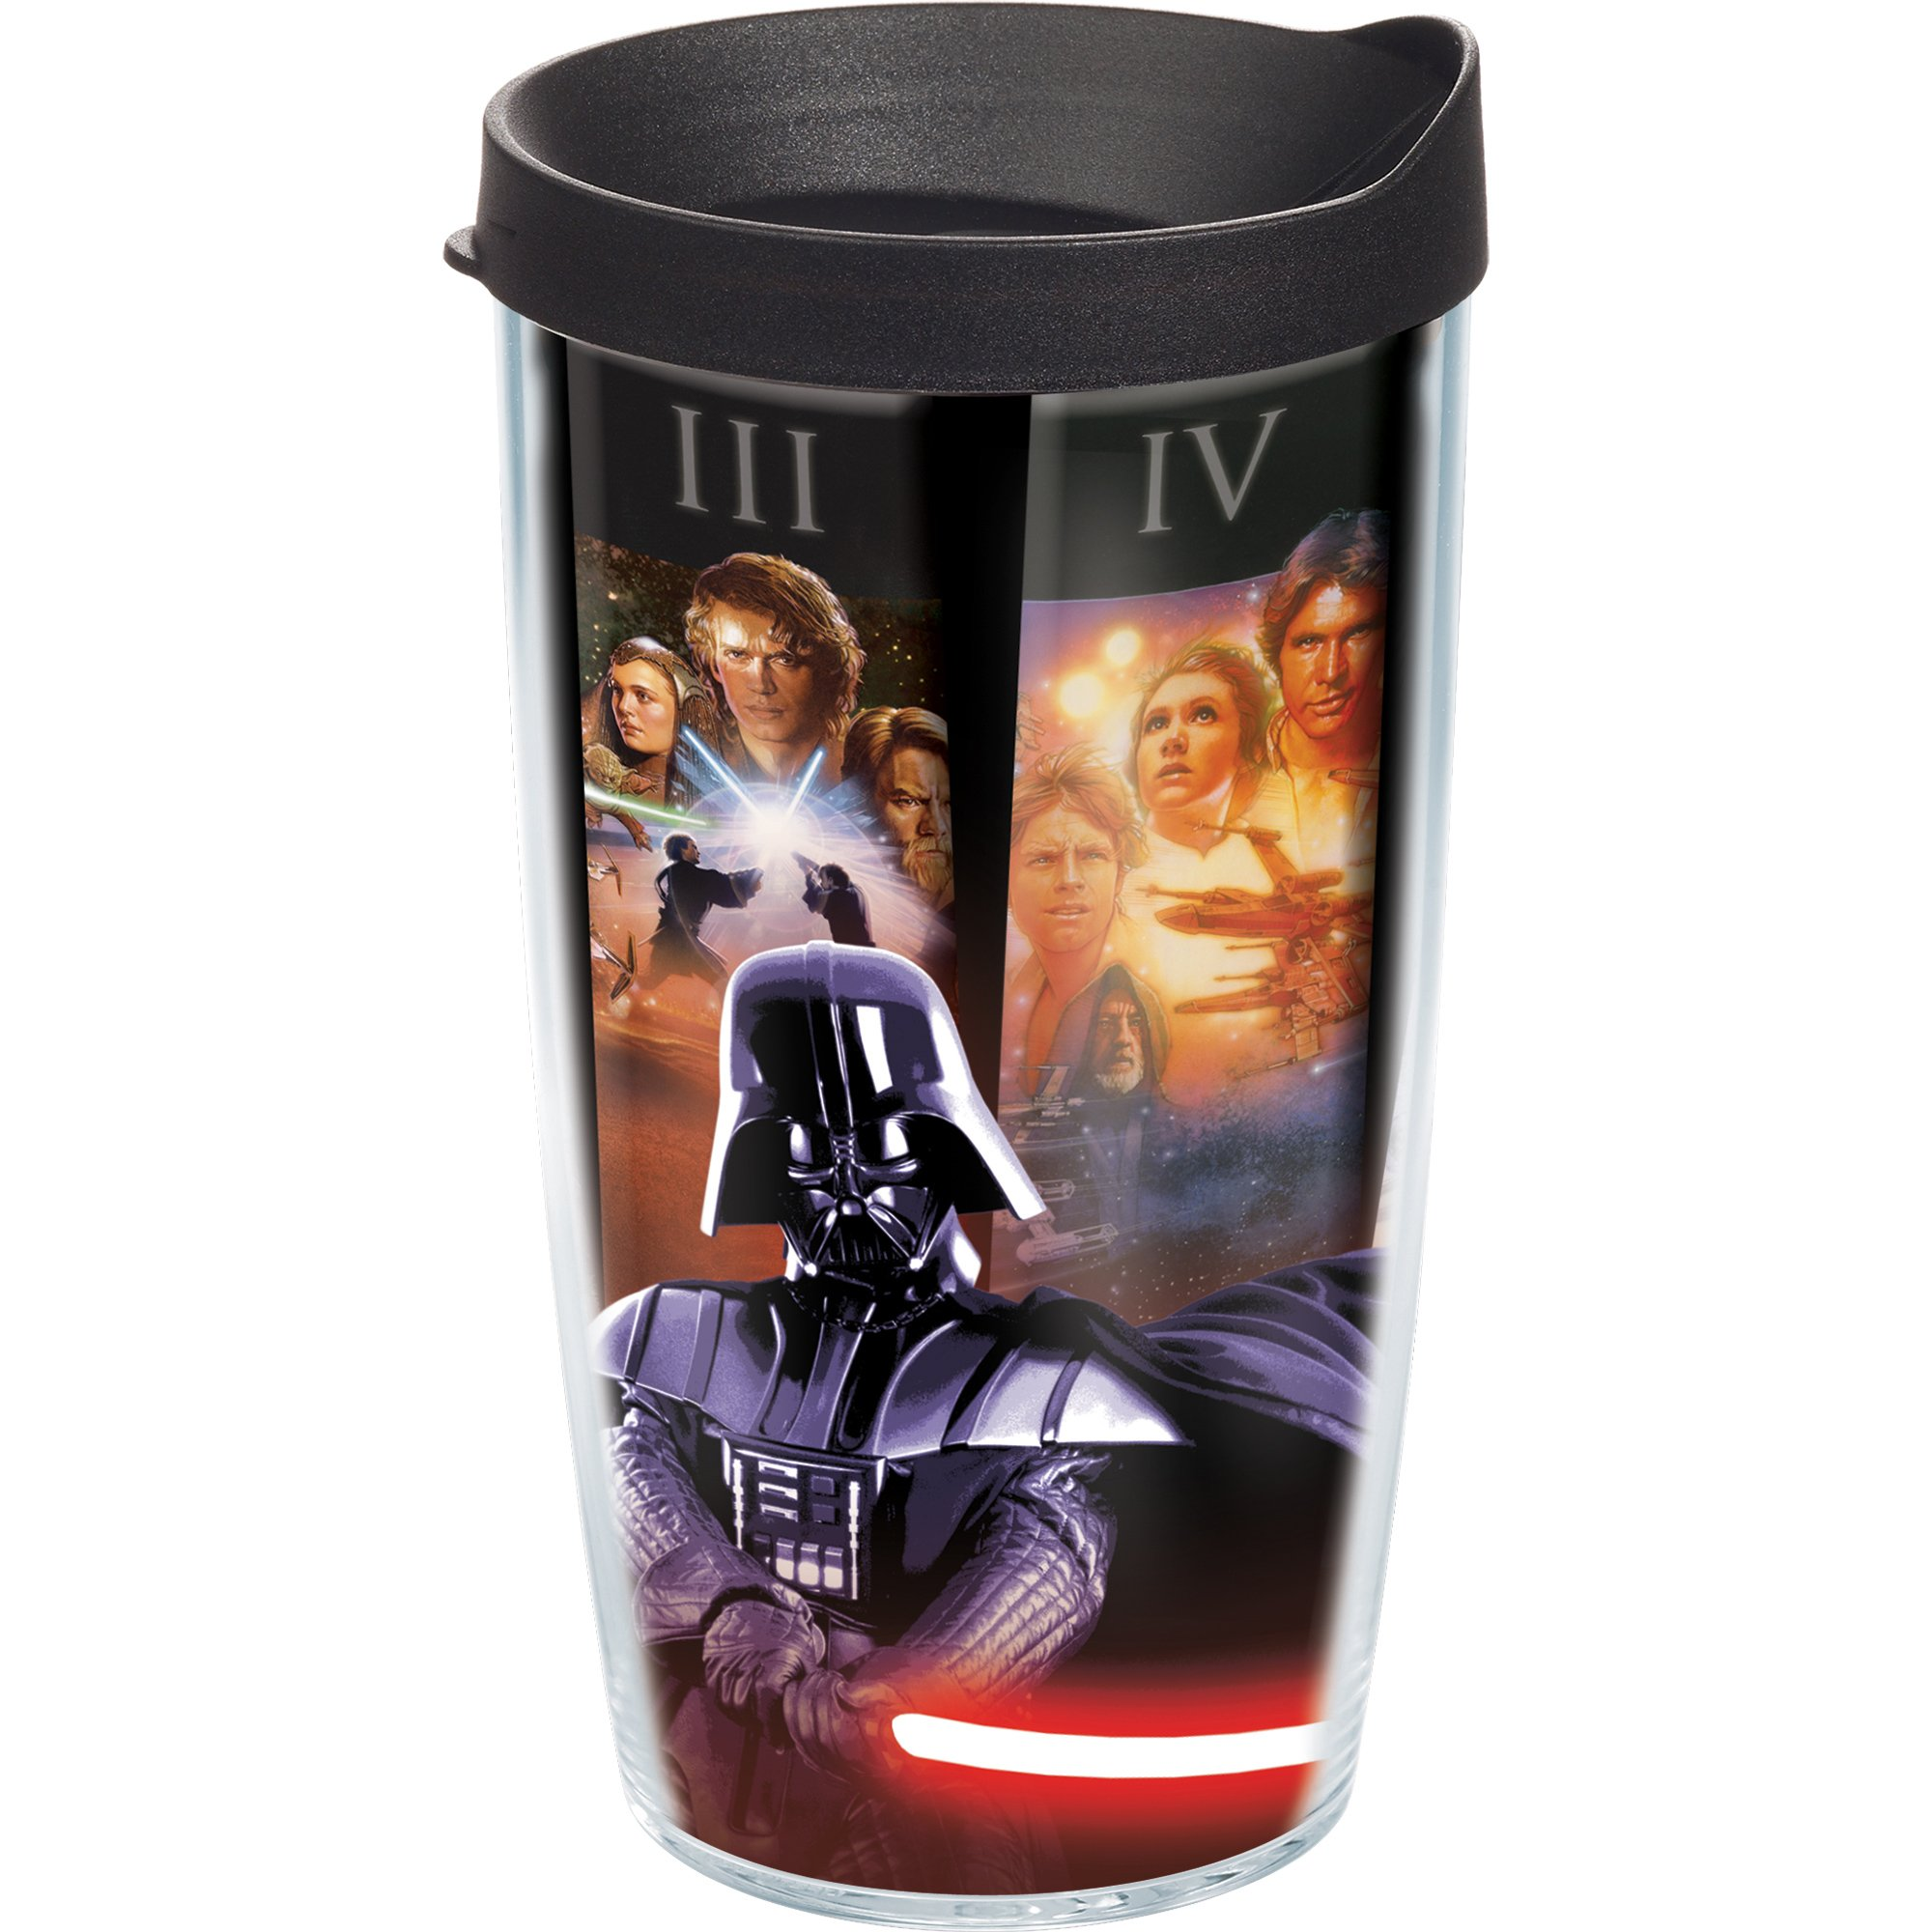 Tervis 1072645 Star Wars - All Posters Tumbler with Wrap and Black Lid 16oz, Clear